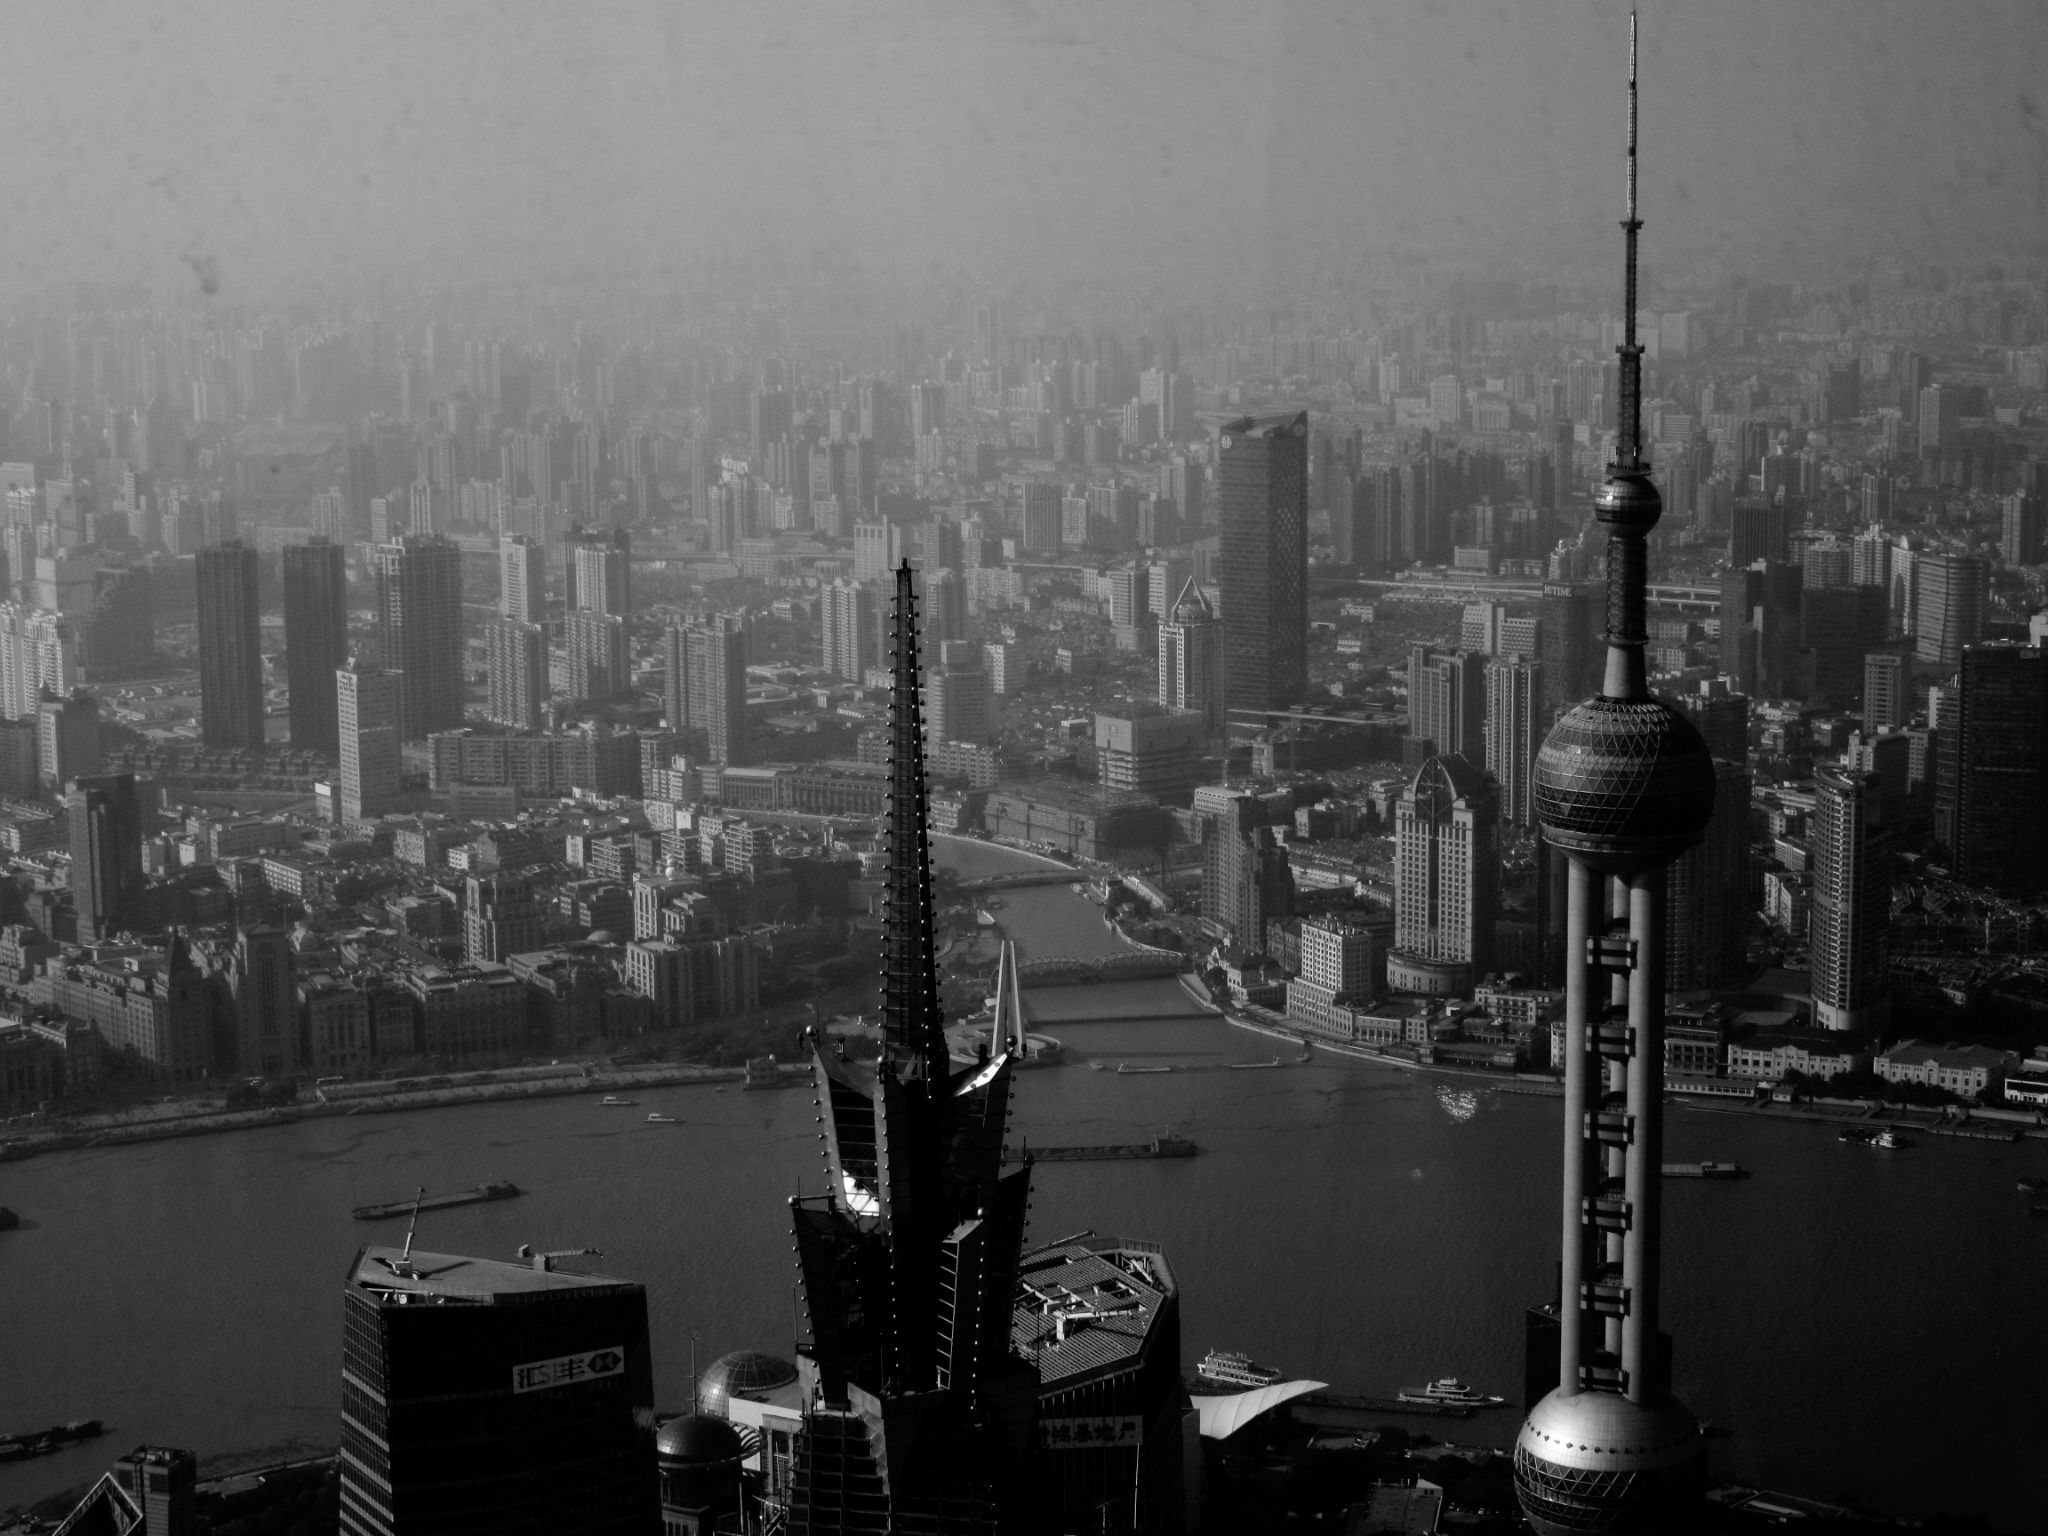 Shanghai- where you don't know if you're in Asia, Europe, or the future